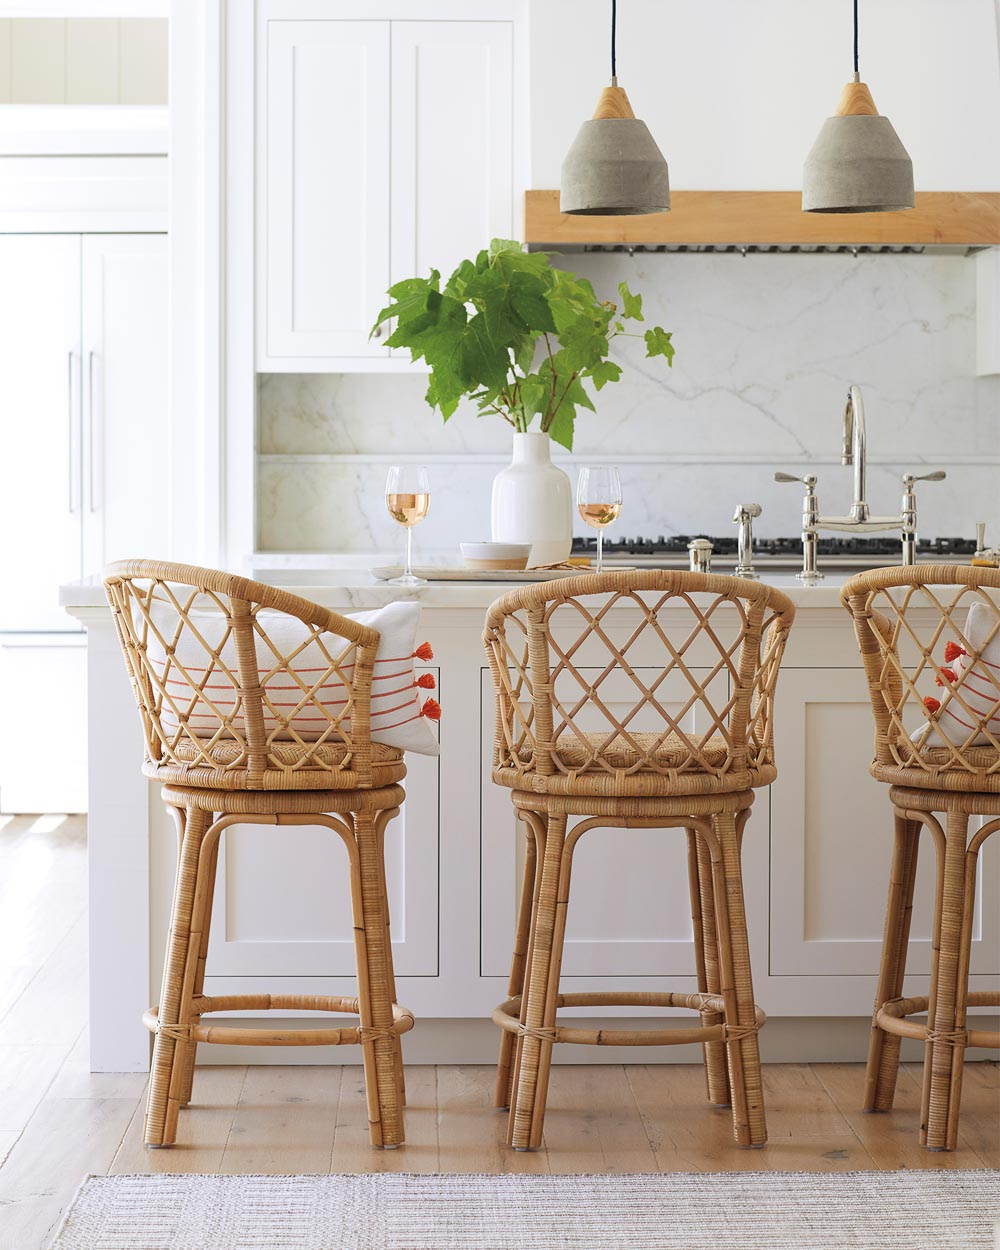 Gorgeous natural rattan swivel counter stools - love how gorgeous they look from all angles!